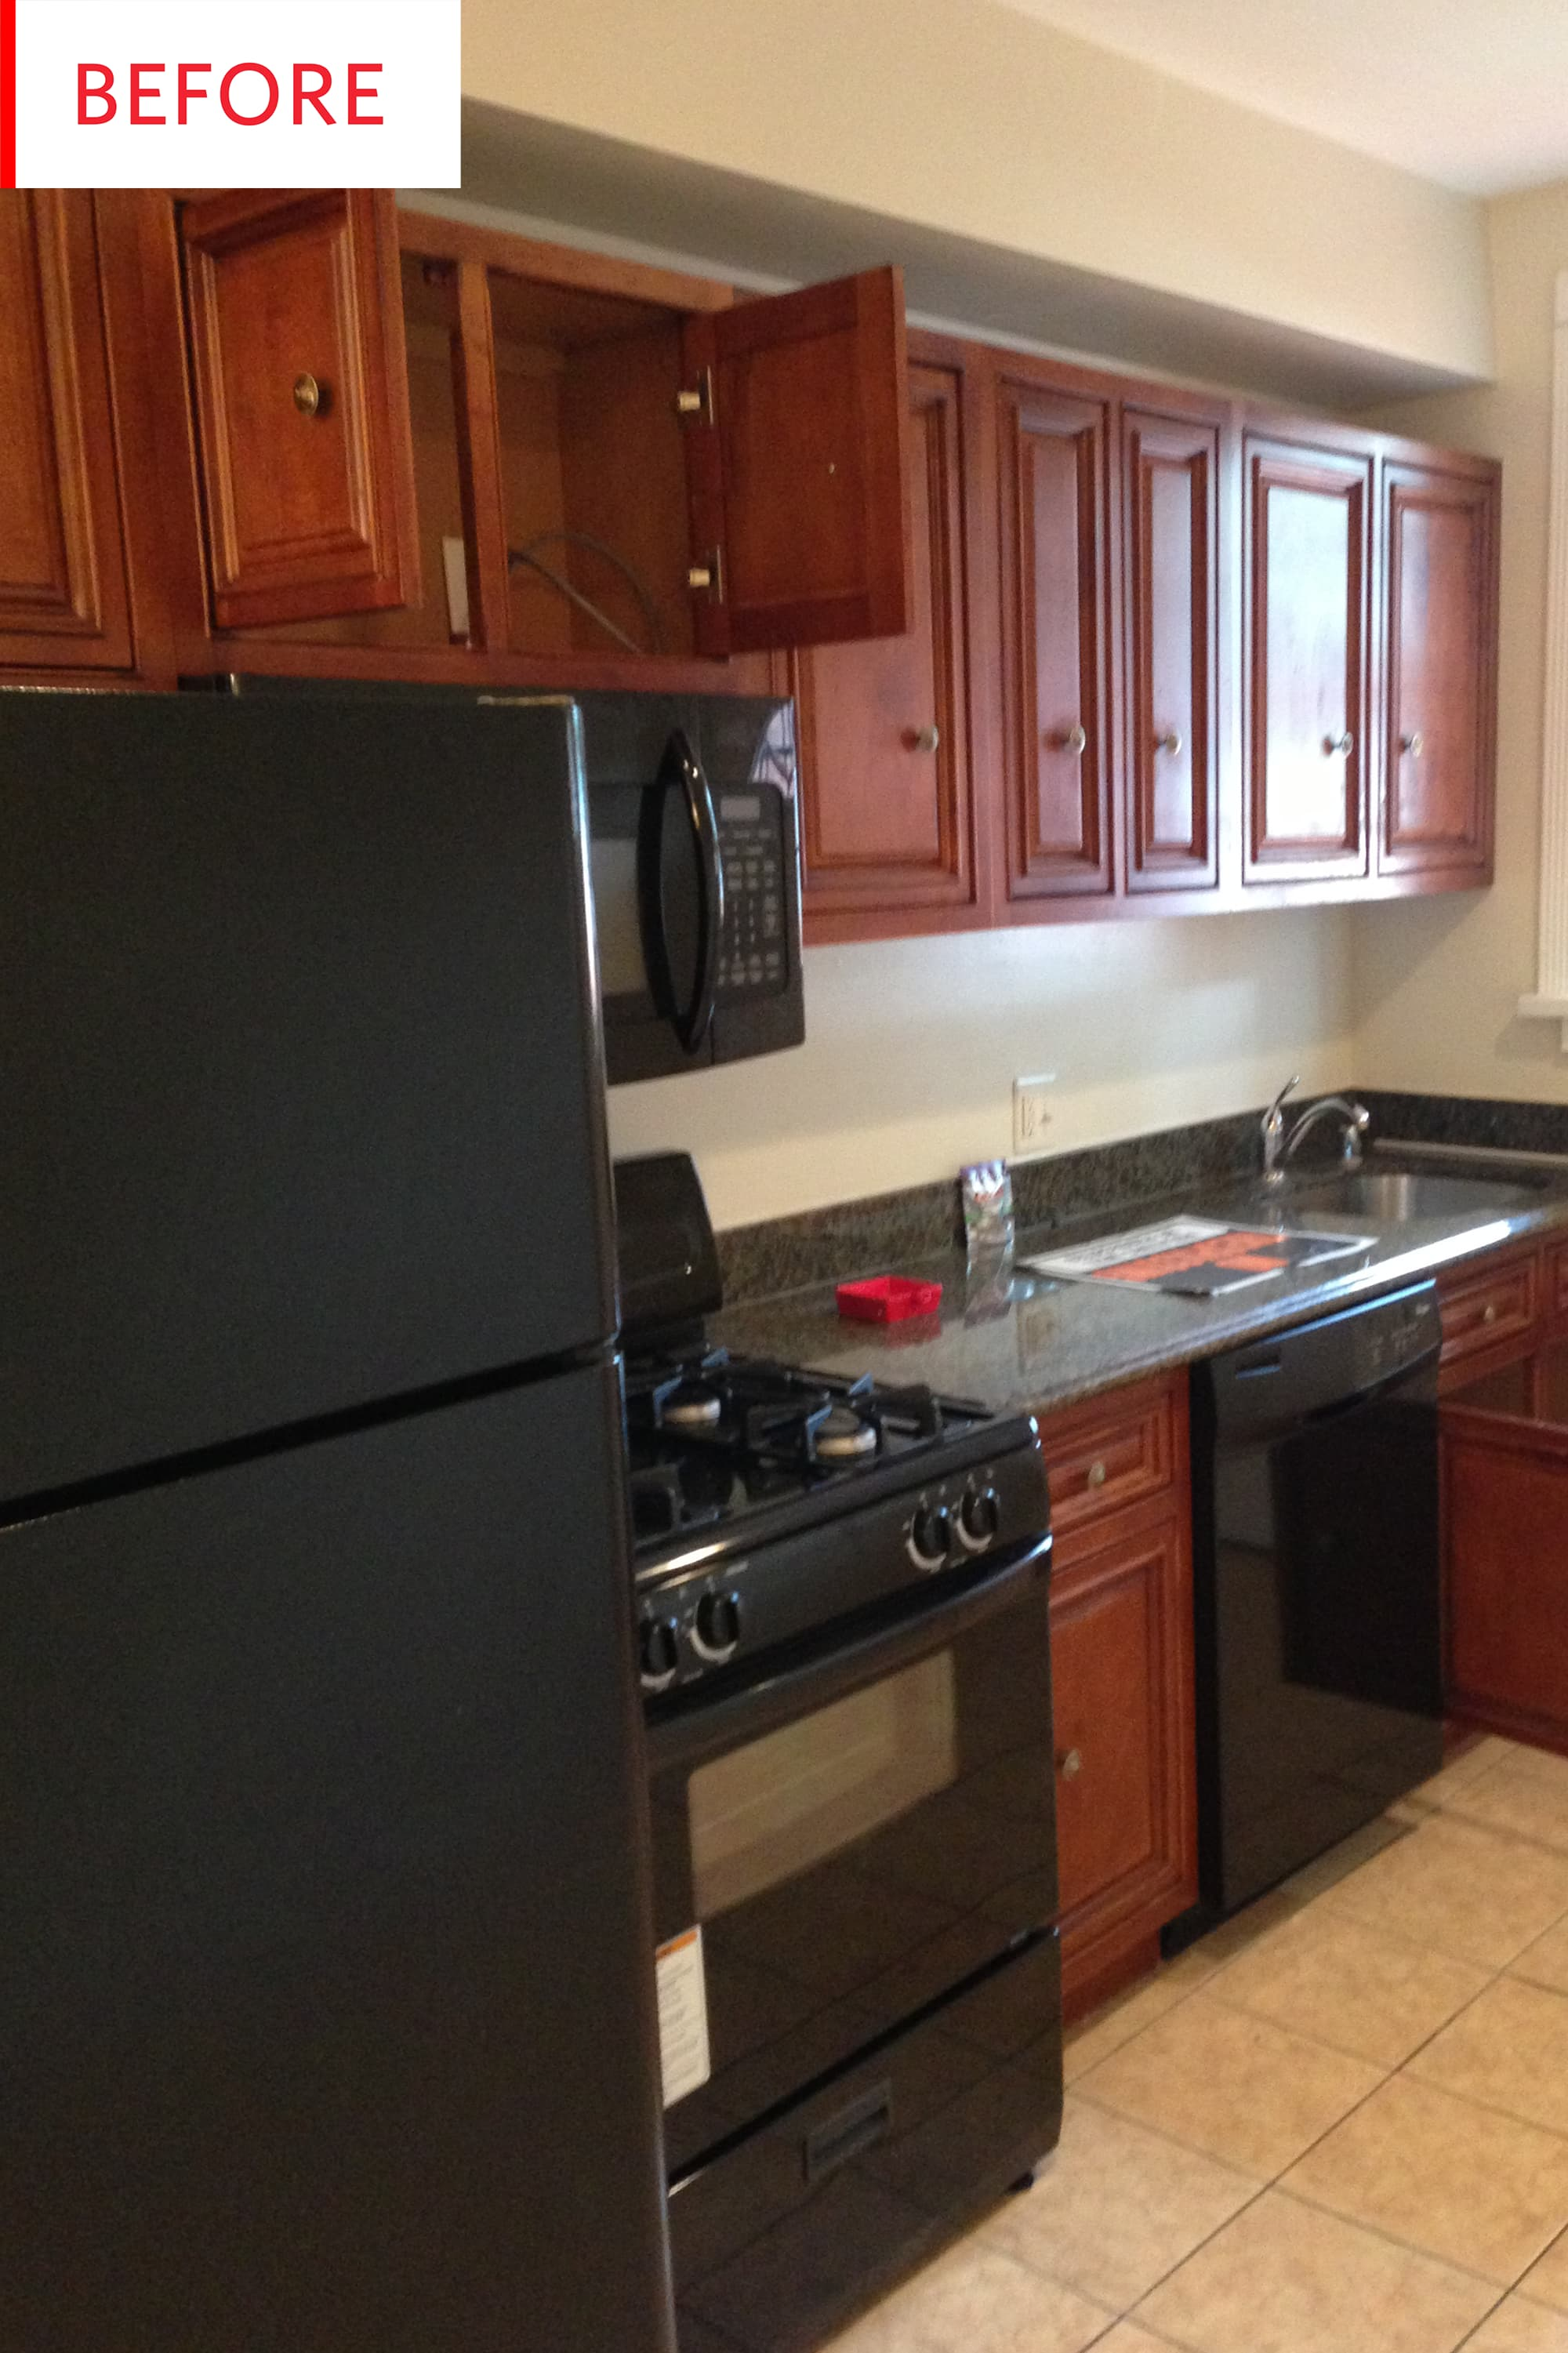 Before And After This Cherry Wood Kitchen Is Now A Riot Of Color